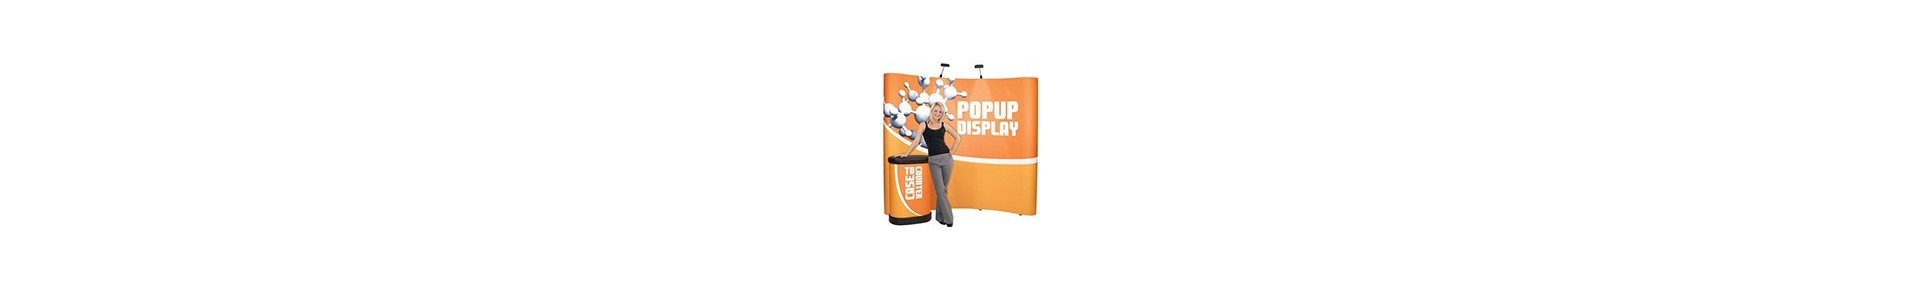 Pop up Banners Canada